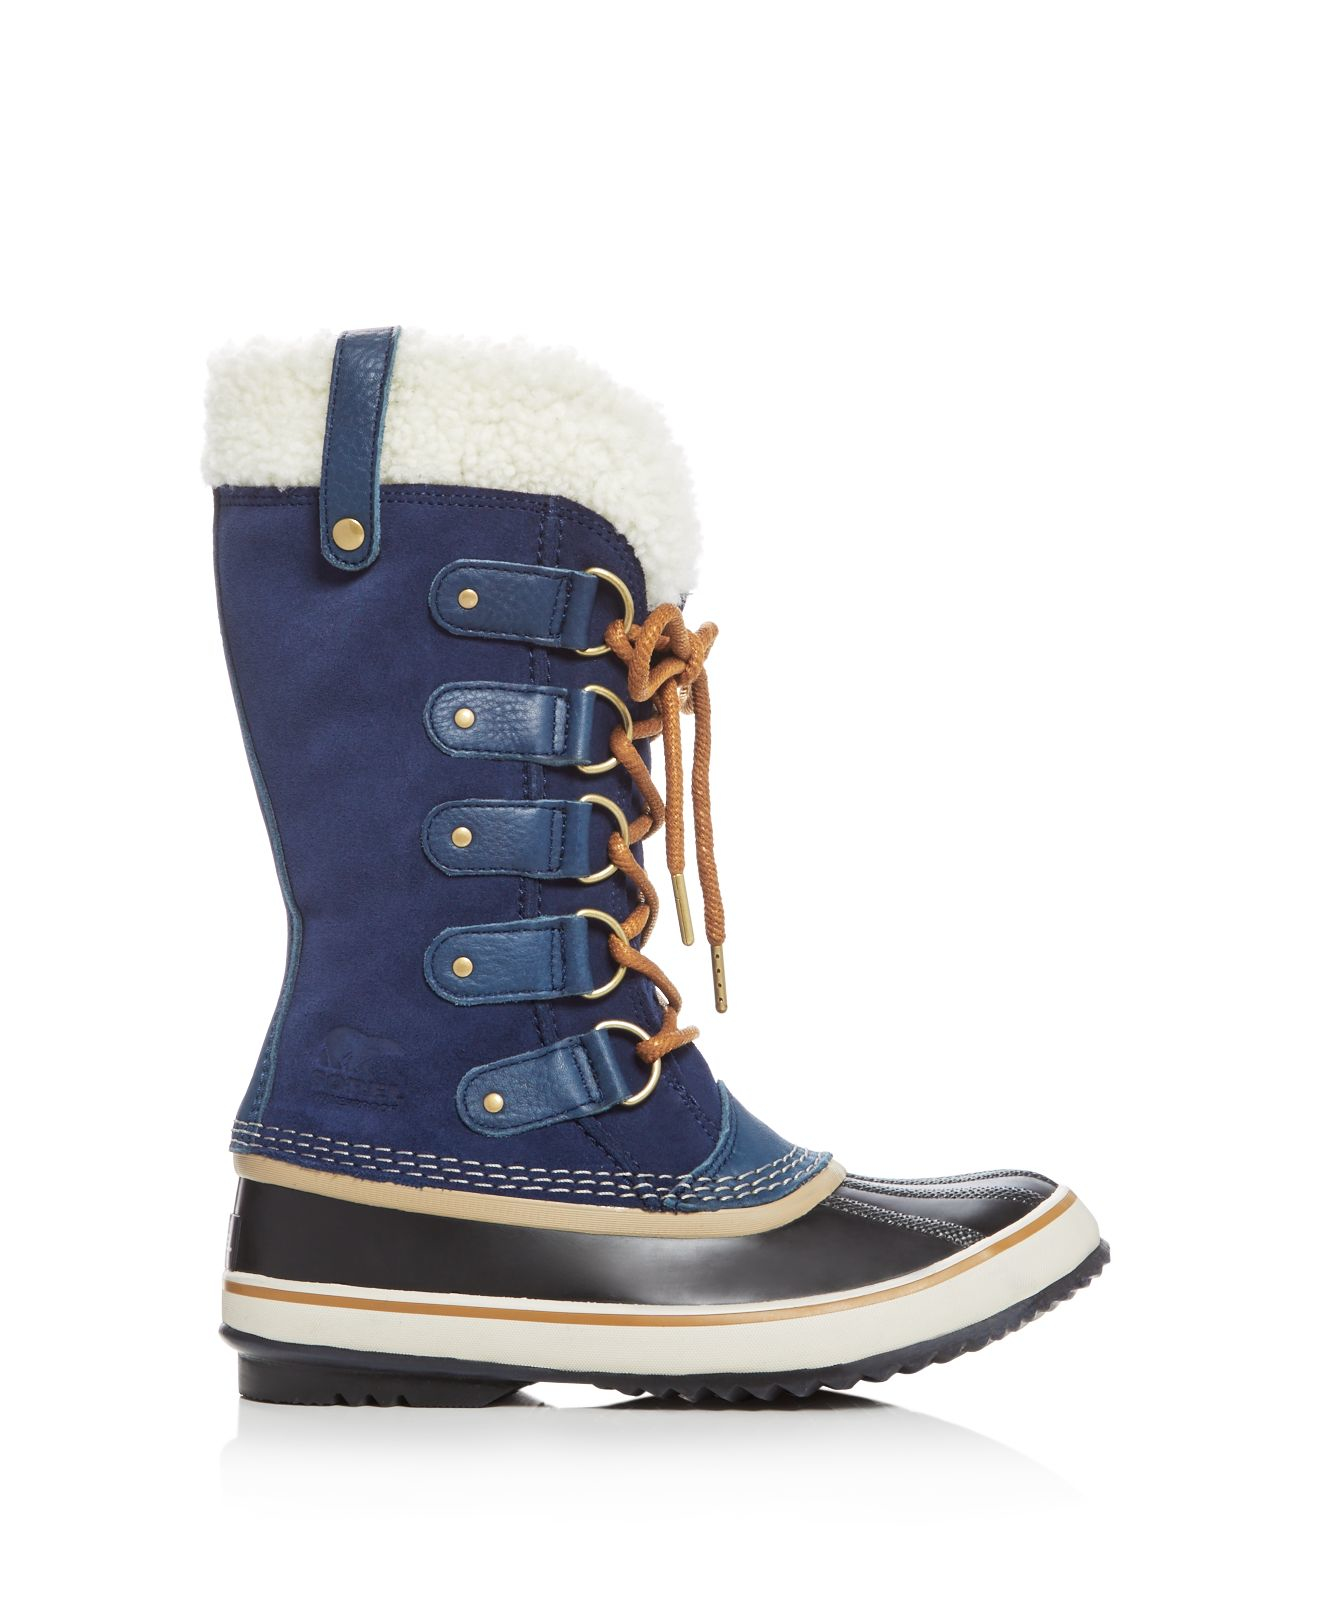 Sorel Felt Joan Of Arctic Shearling Cold Weather Boots in Blue